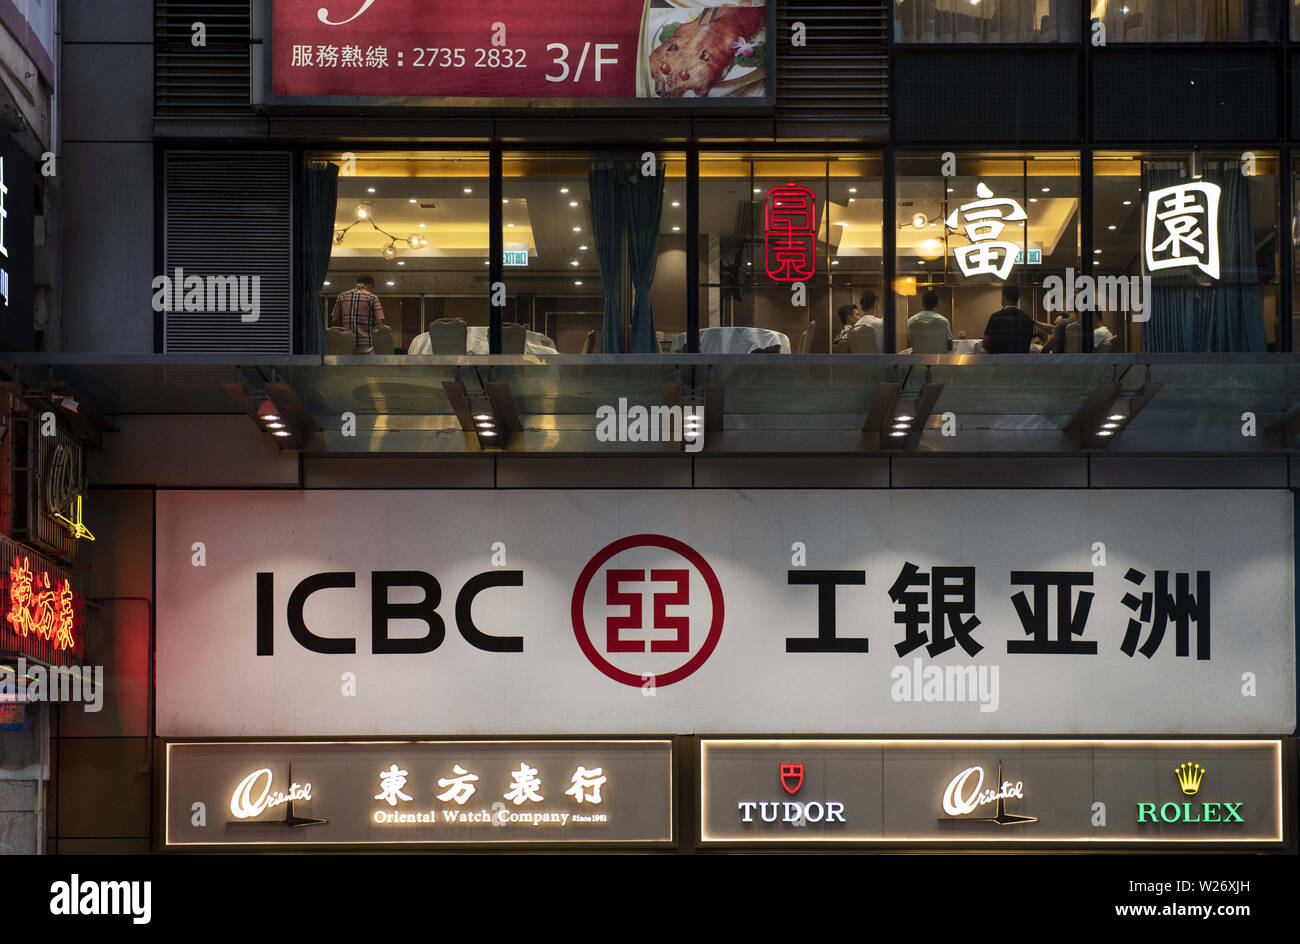 Hong Kong, China. 17th May, 2019. Chinese multinational banking company and largest bank in the world Industrial and Commercial Bank of China (ICBC) branch is seen in Hong Kong. Credit: Budrul Chukrut/SOPA Images/ZUMA Wire/Alamy Live News - Stock Image